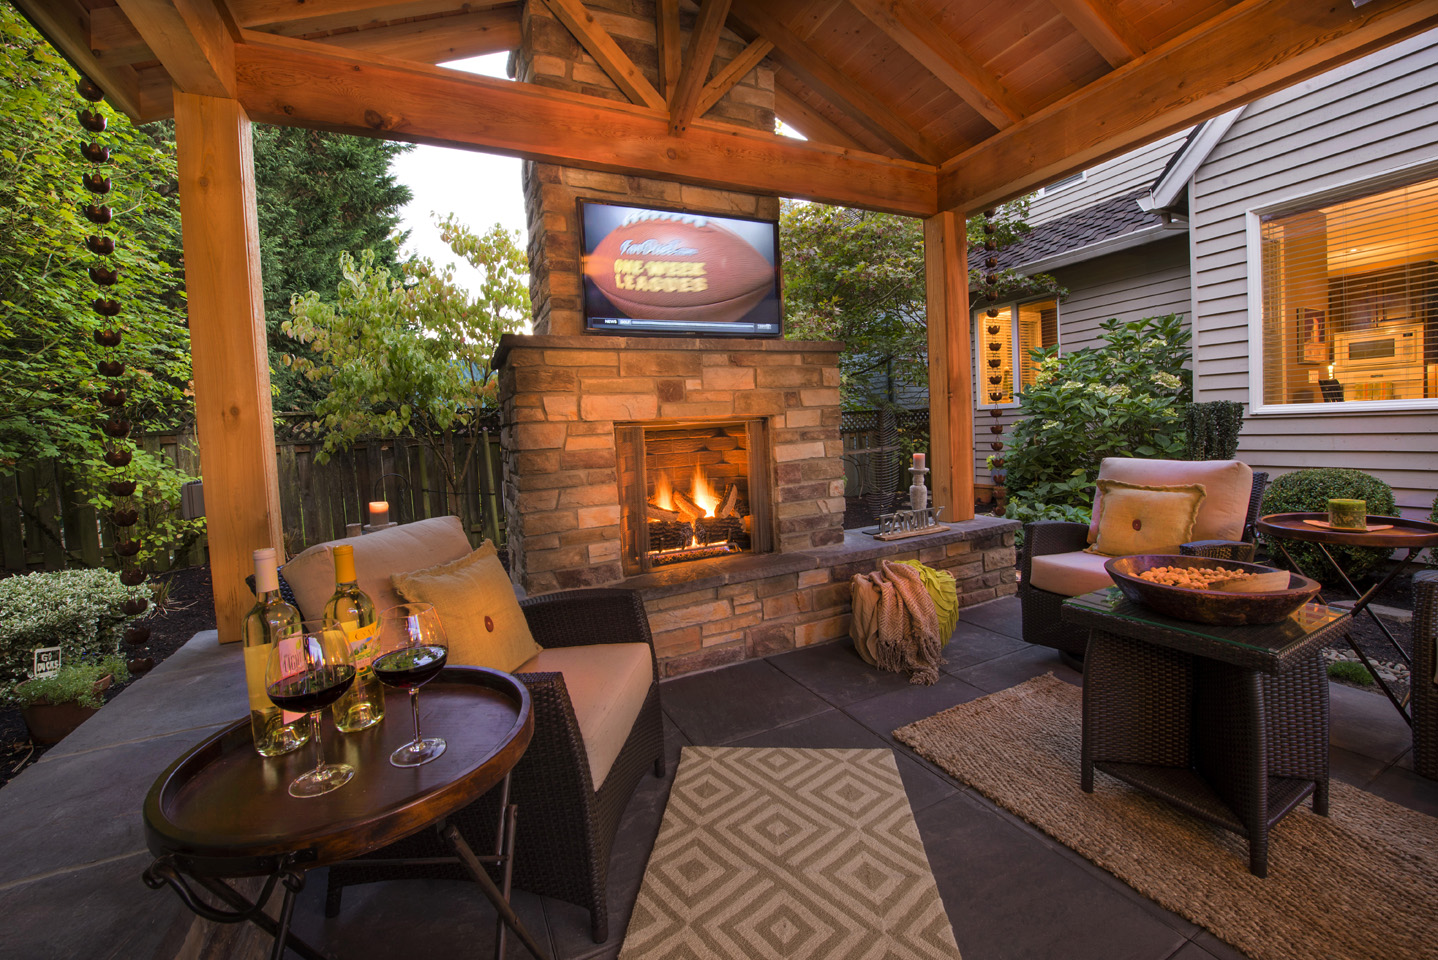 Fireplace with TV in Landscape